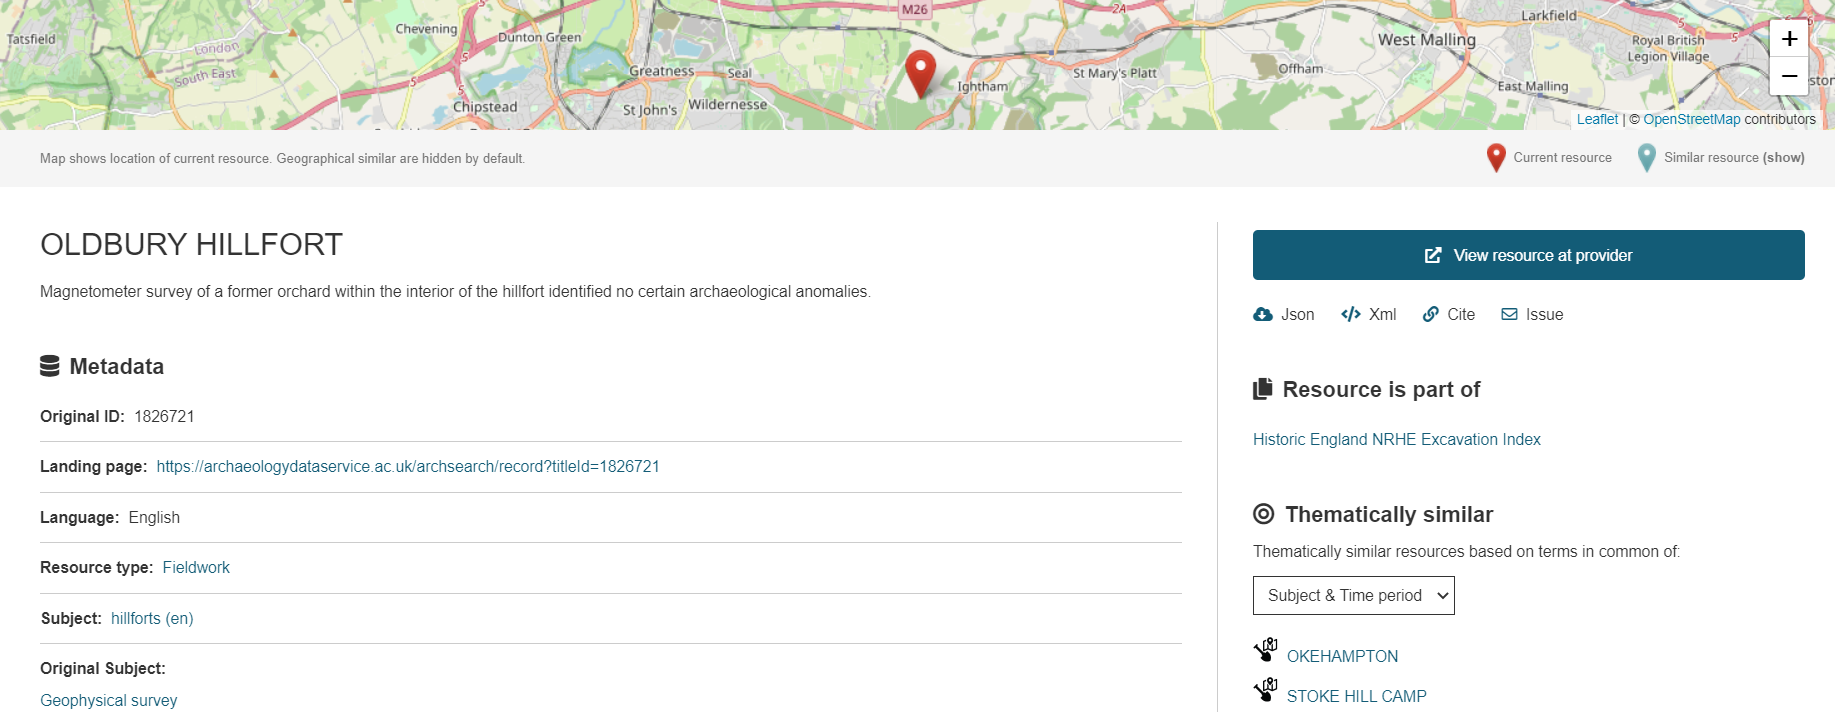 A screenshot of the portal showing the metadata for Oldbury Hillfort.